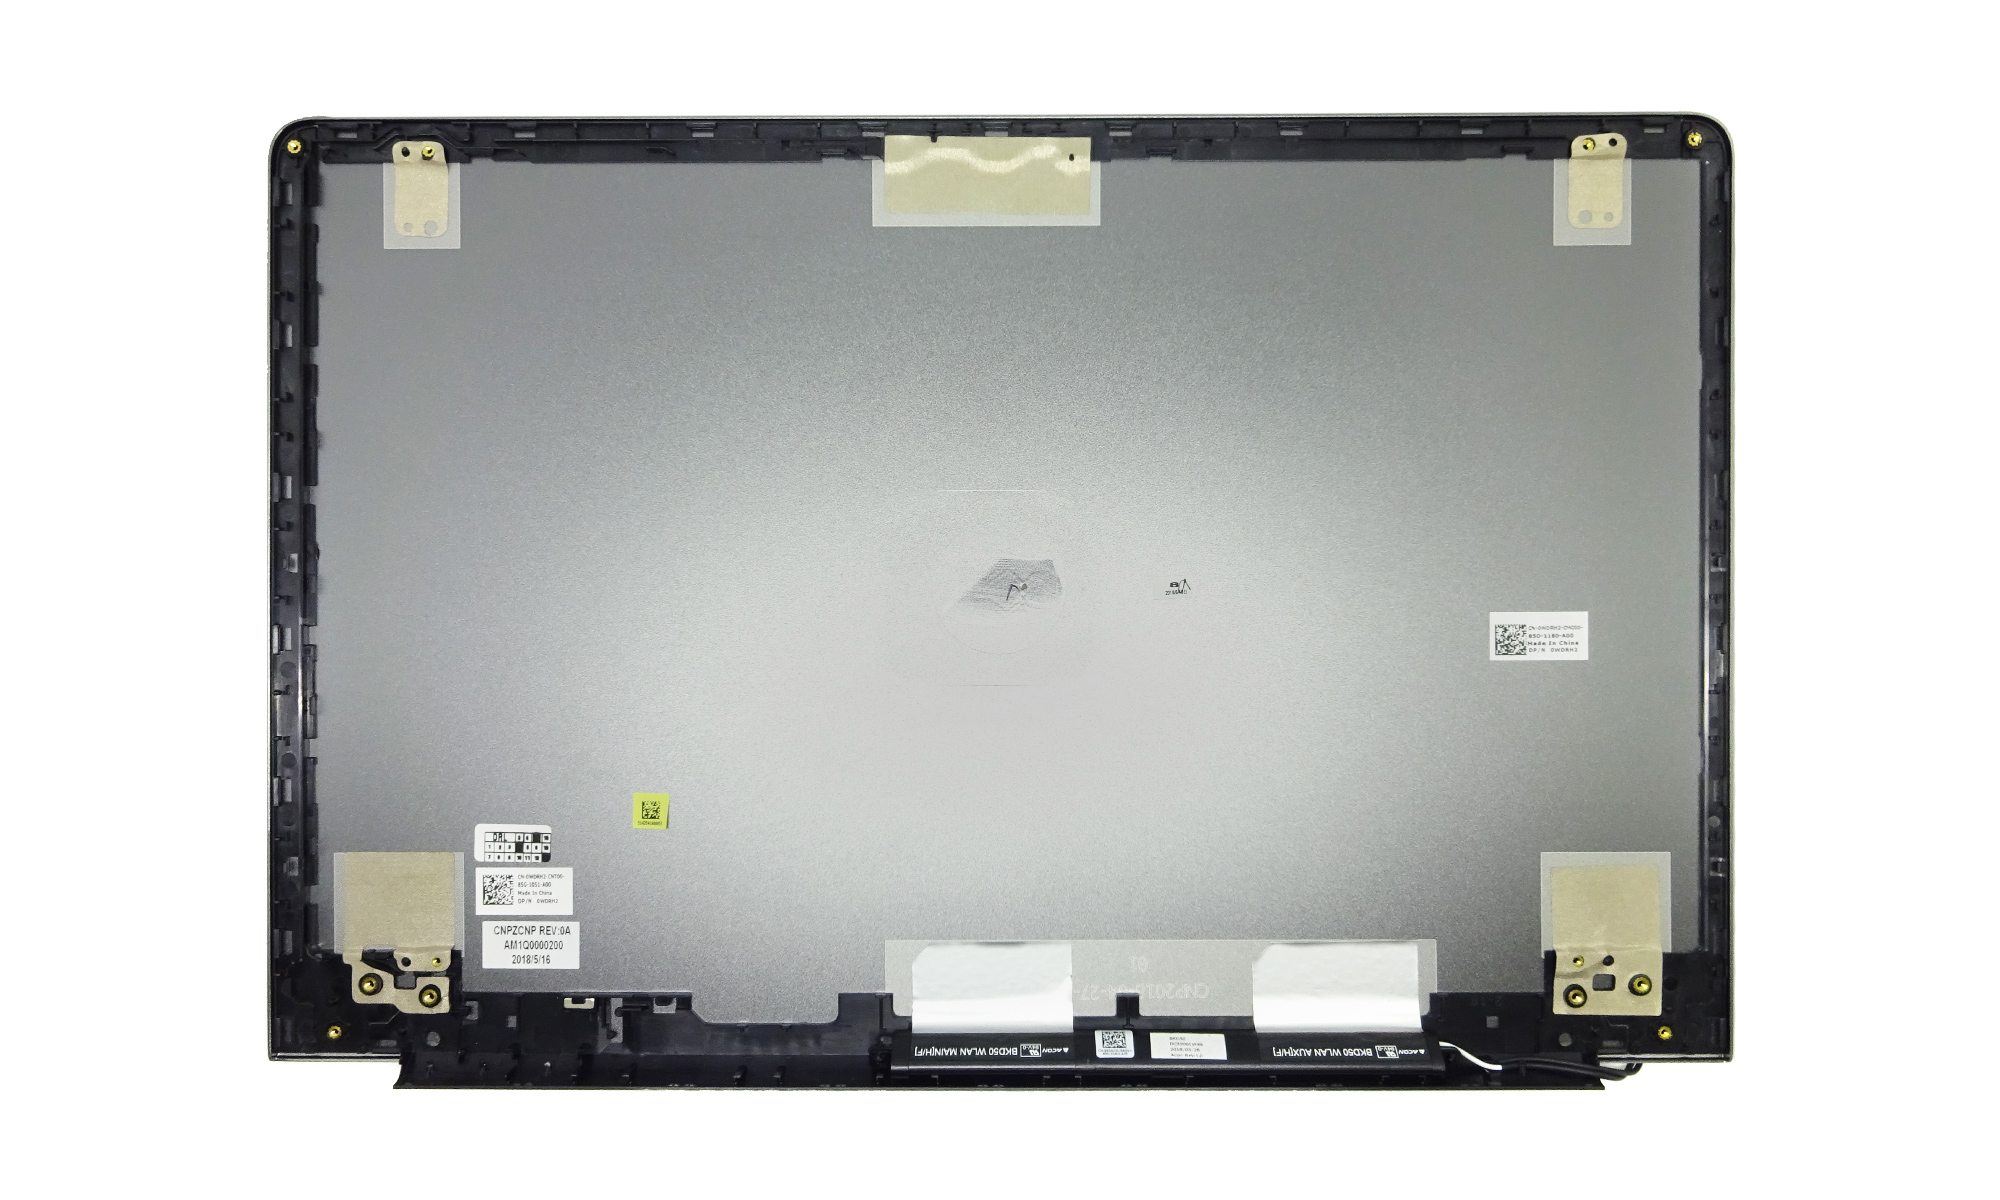 Capac display pentru Dell Vostro 15 5568, original, gri, model WDRH2